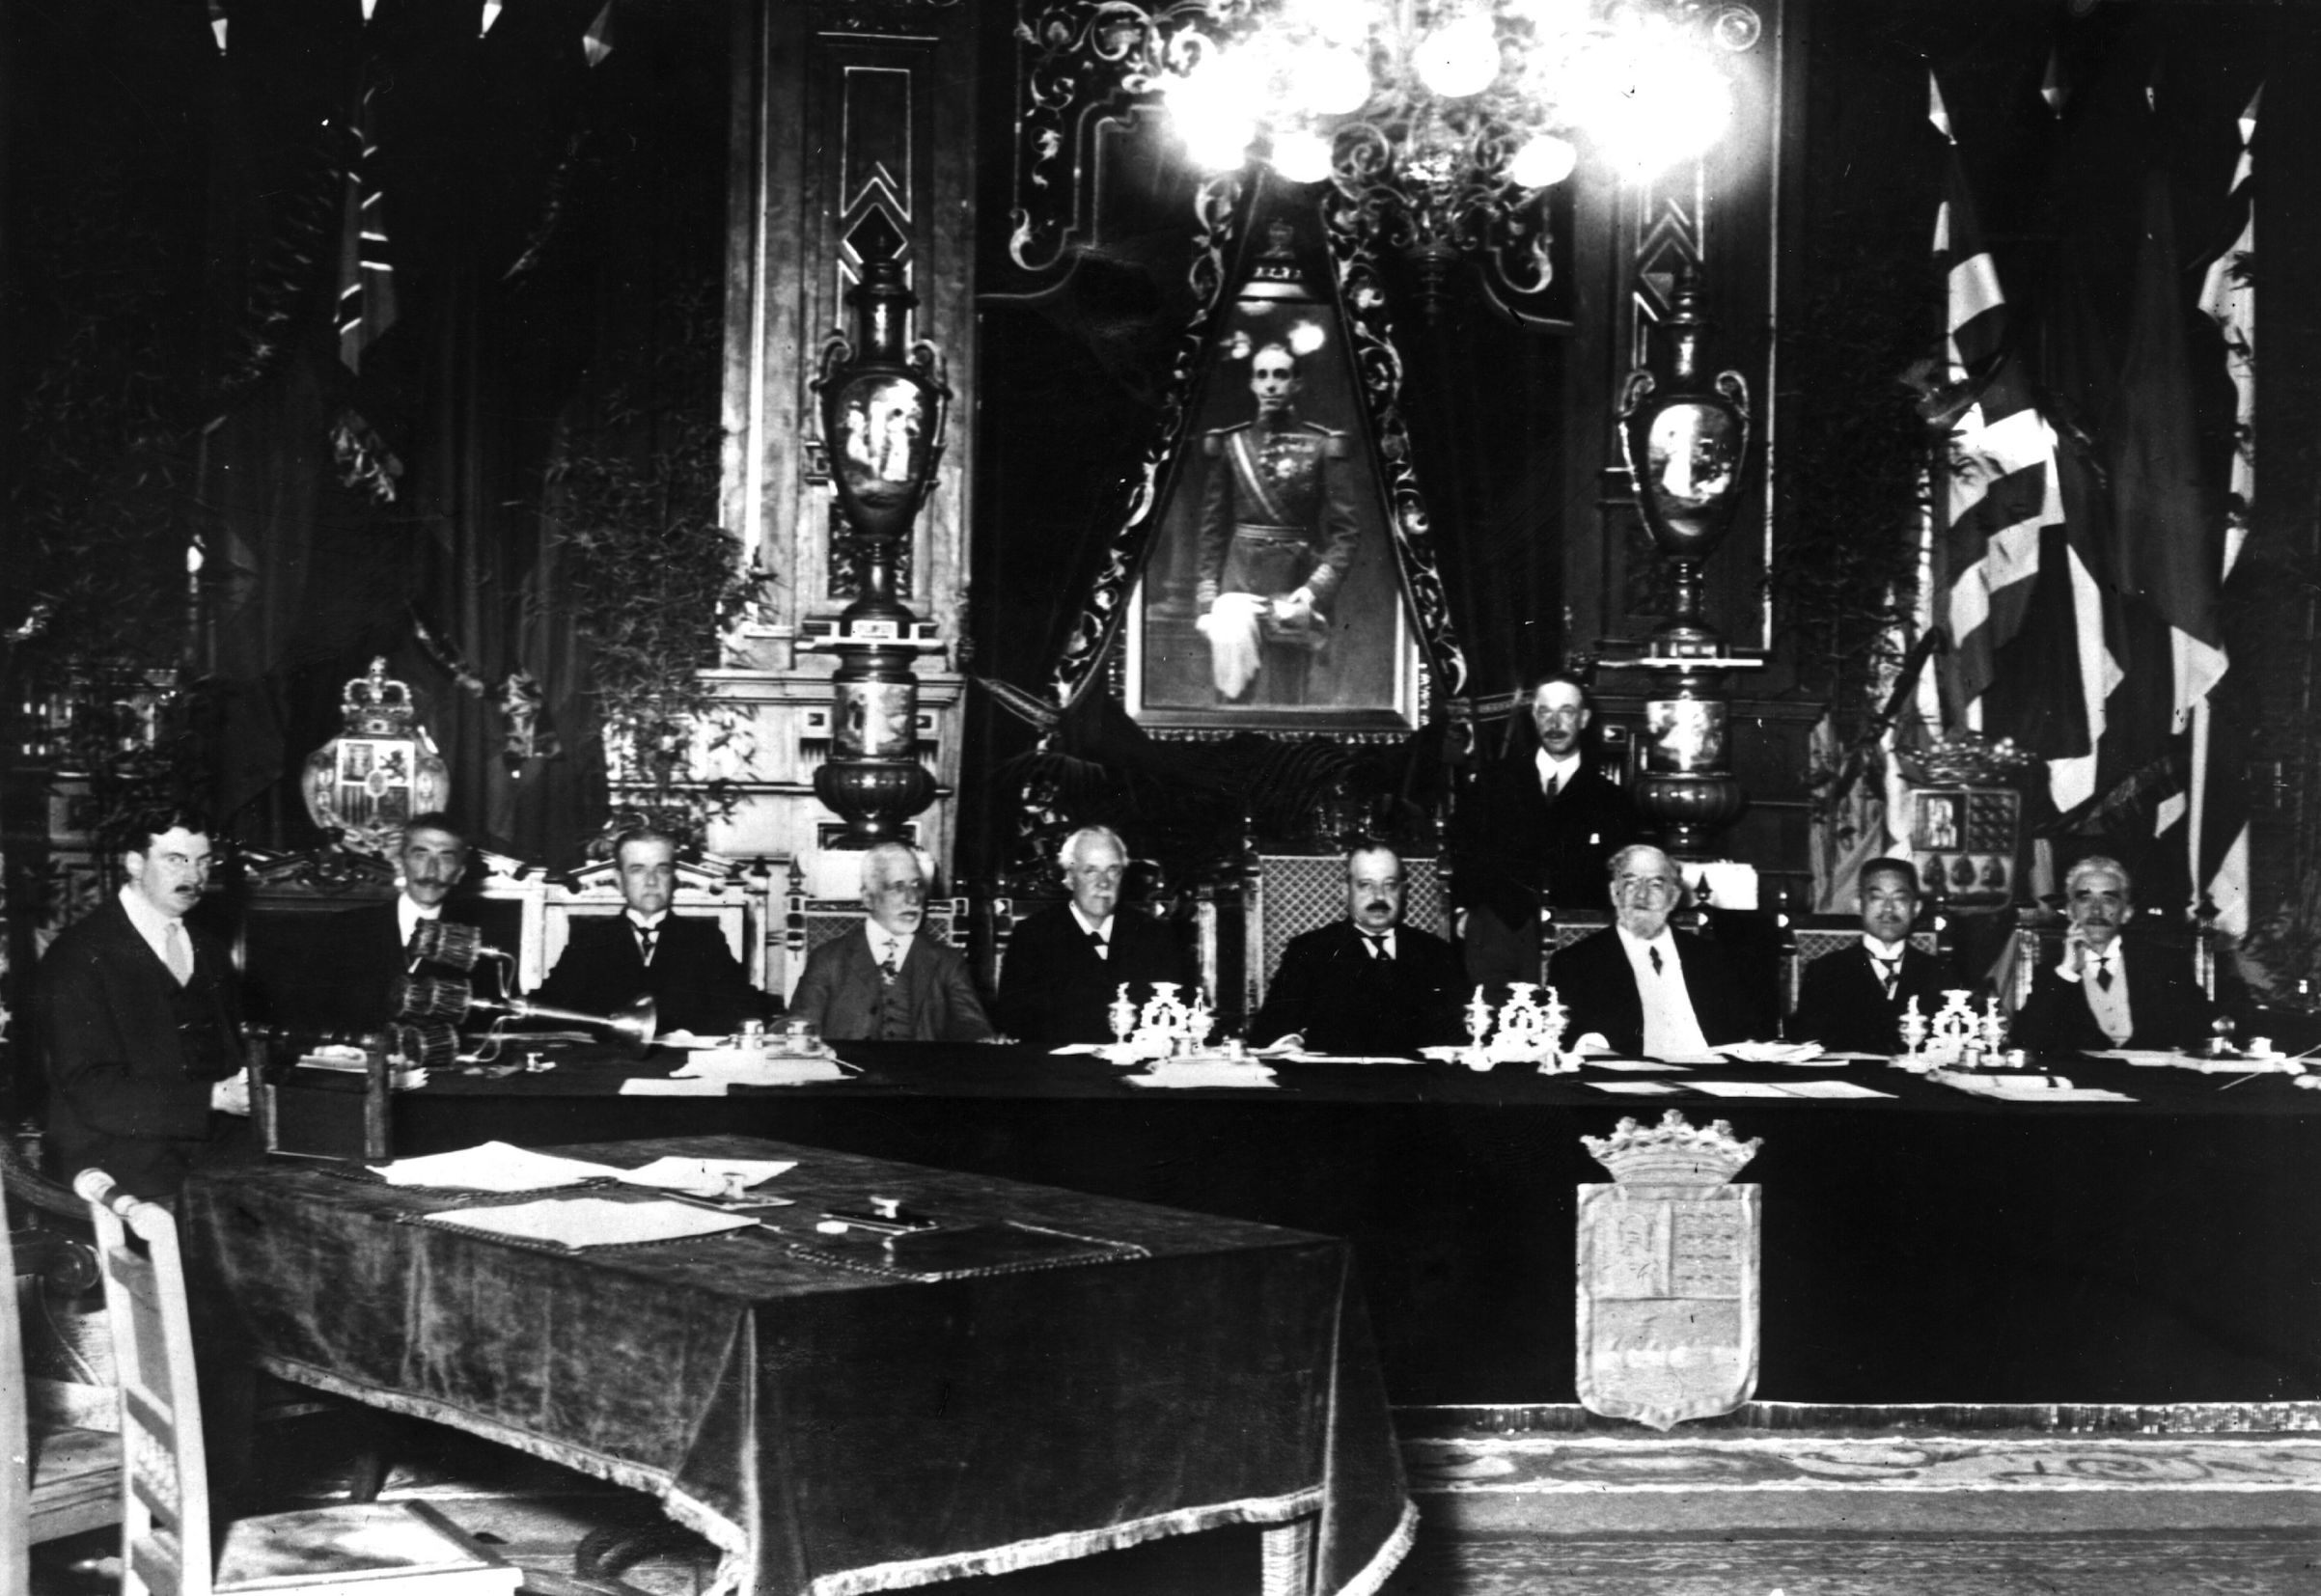 Nov. 15, 1920:  The first session of the Council of the League of Nations with their coat-of-arms.